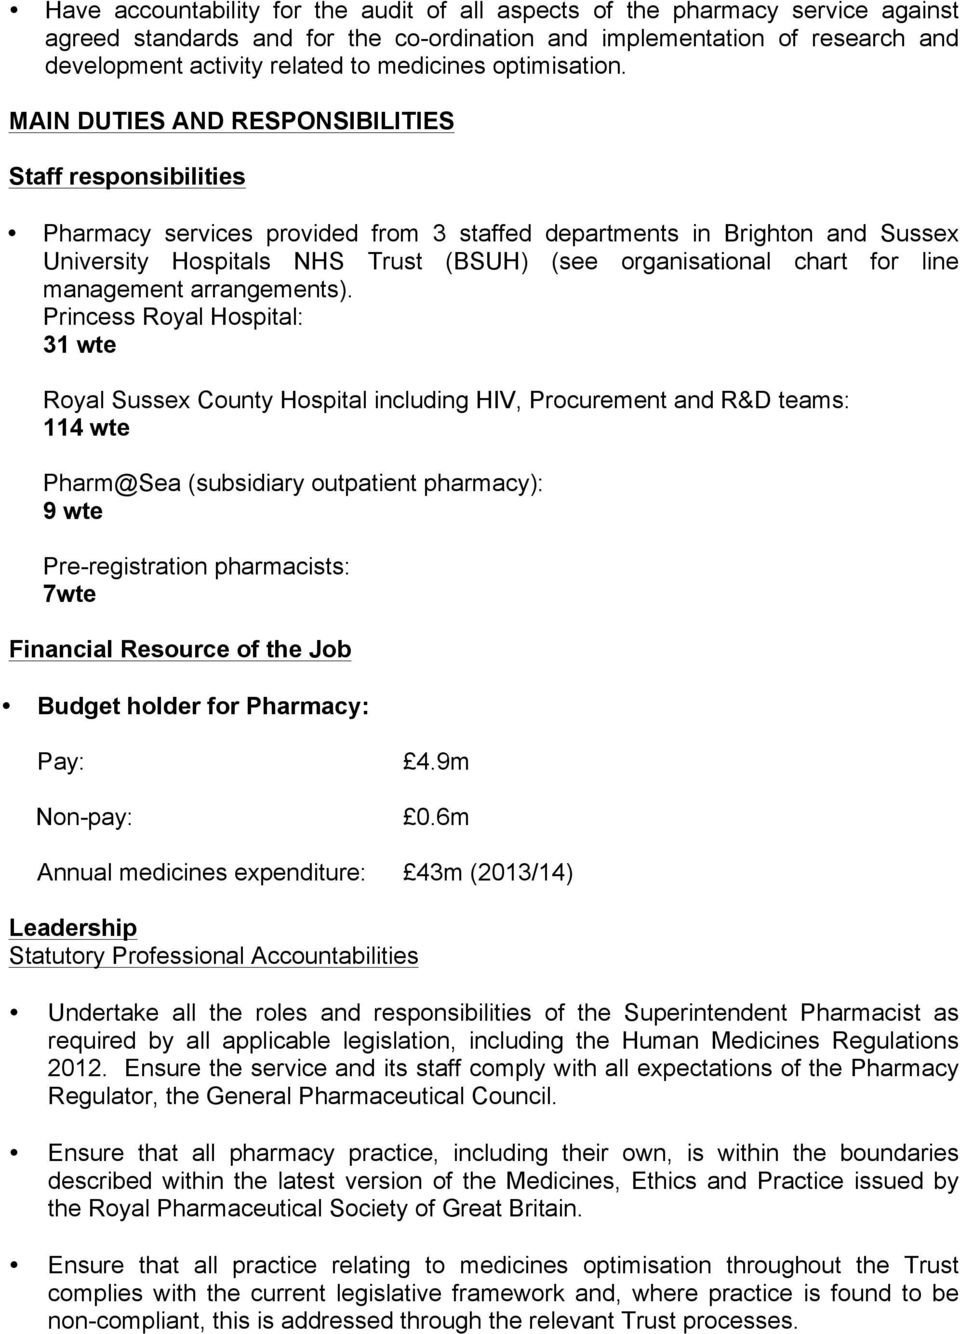 MAIN DUTIES AND RESPONSIBILITIES Staff responsibilities Pharmacy services provided from 3 staffed departments in Brighton and Sussex University Hospitals NHS Trust (BSUH) (see organisational chart